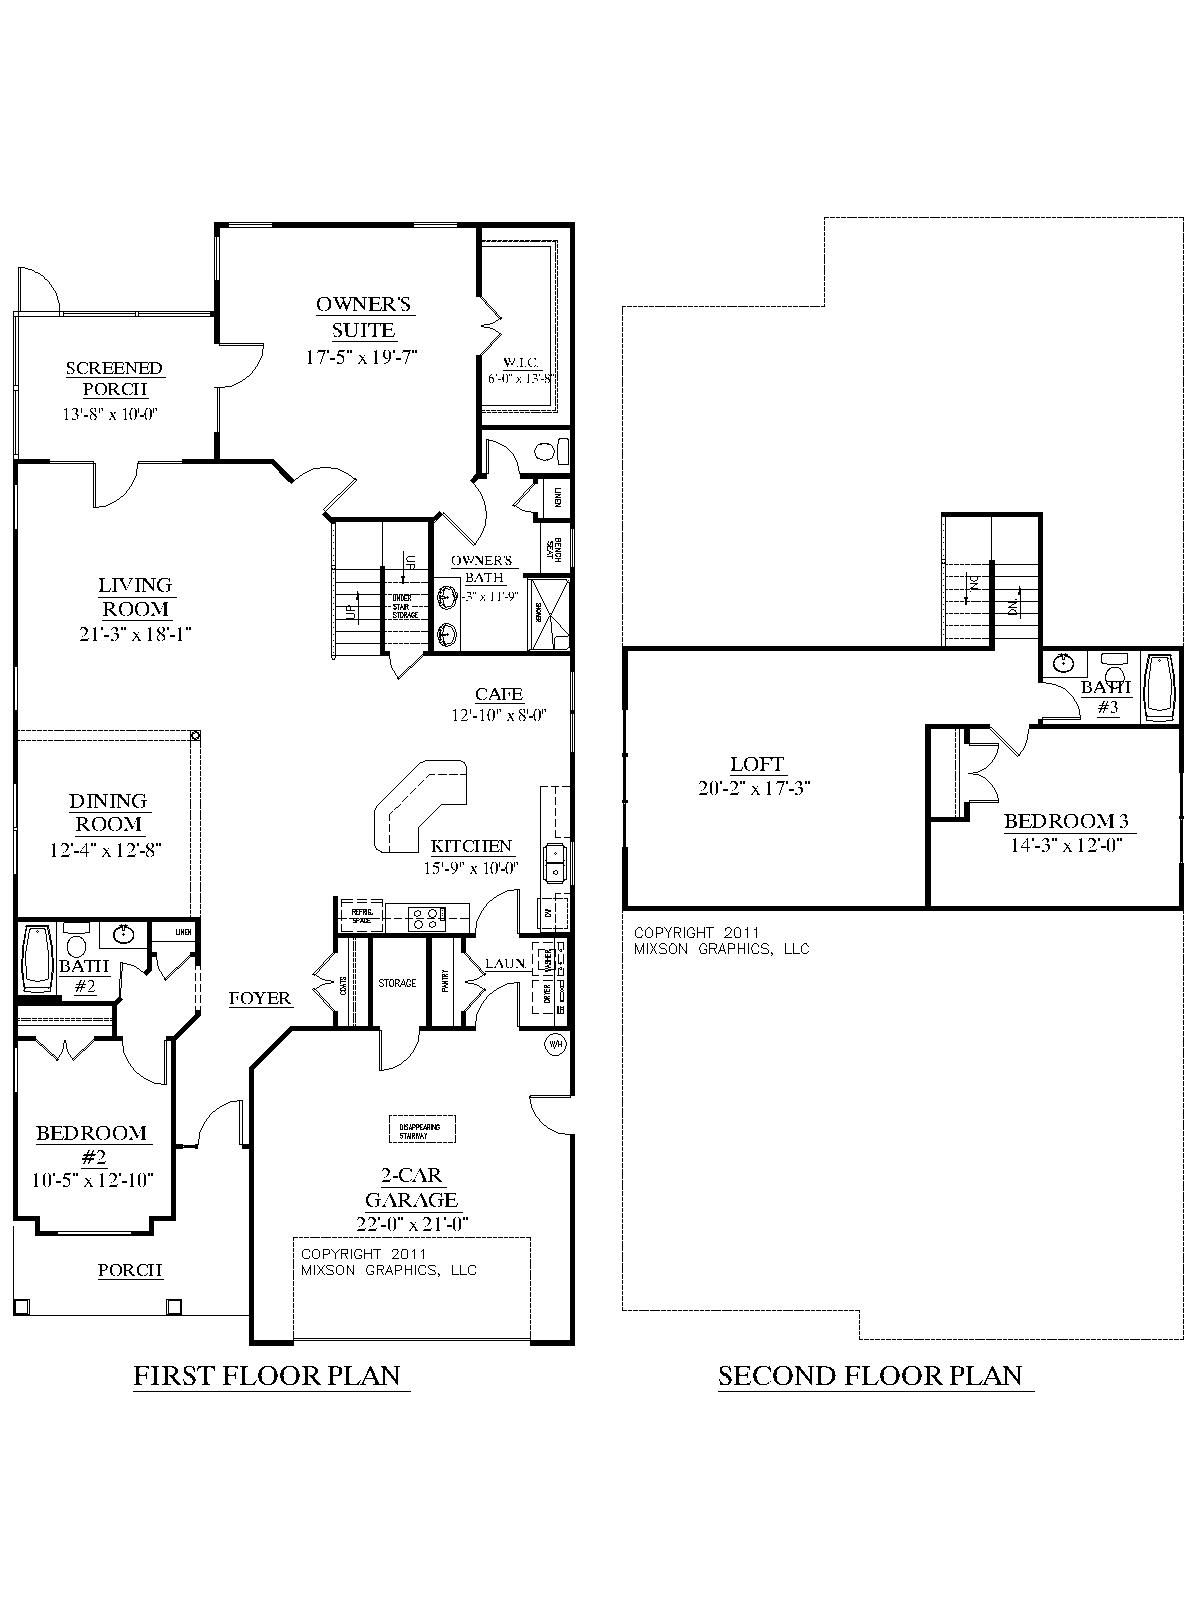 House Plan 2755 Woodbridge Floor Plan Traditional 1 1 2 Story House Plan With 3 Bedrooms And 3 Ful Loft Floor Plans Barn Homes Floor Plans Garage Floor Plans